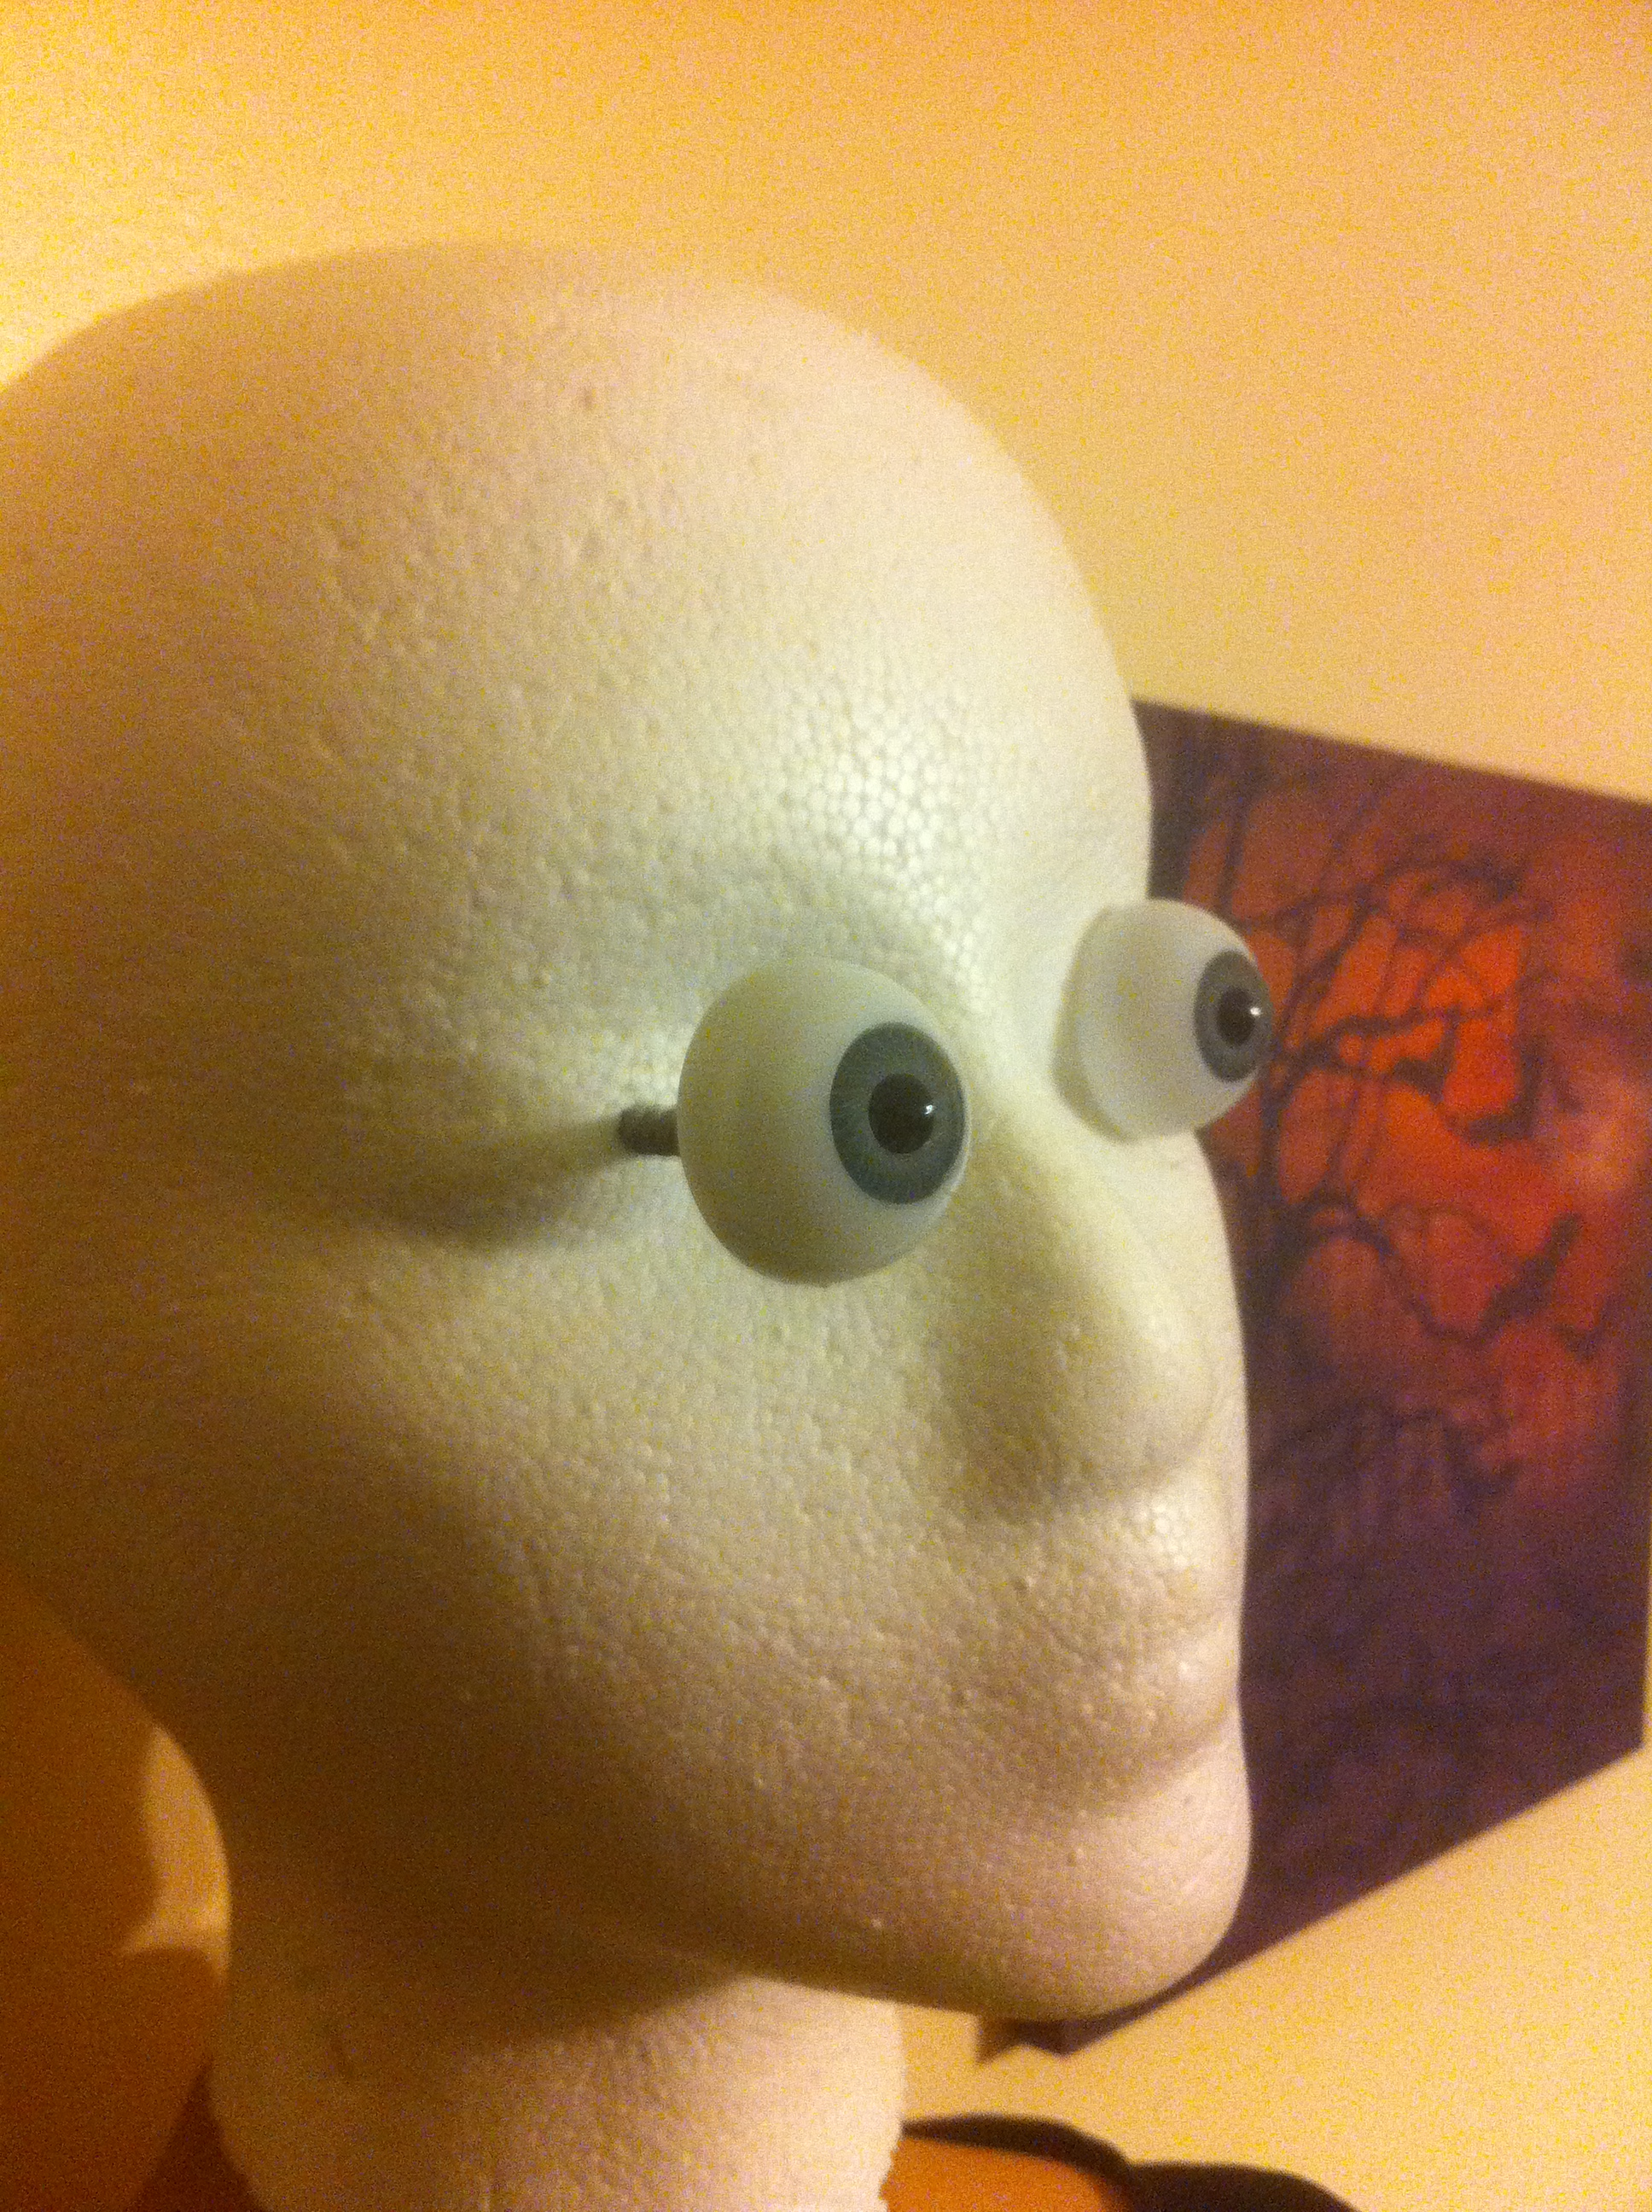 styrofoam head with eyes - Spirit Halloween Medford Ma